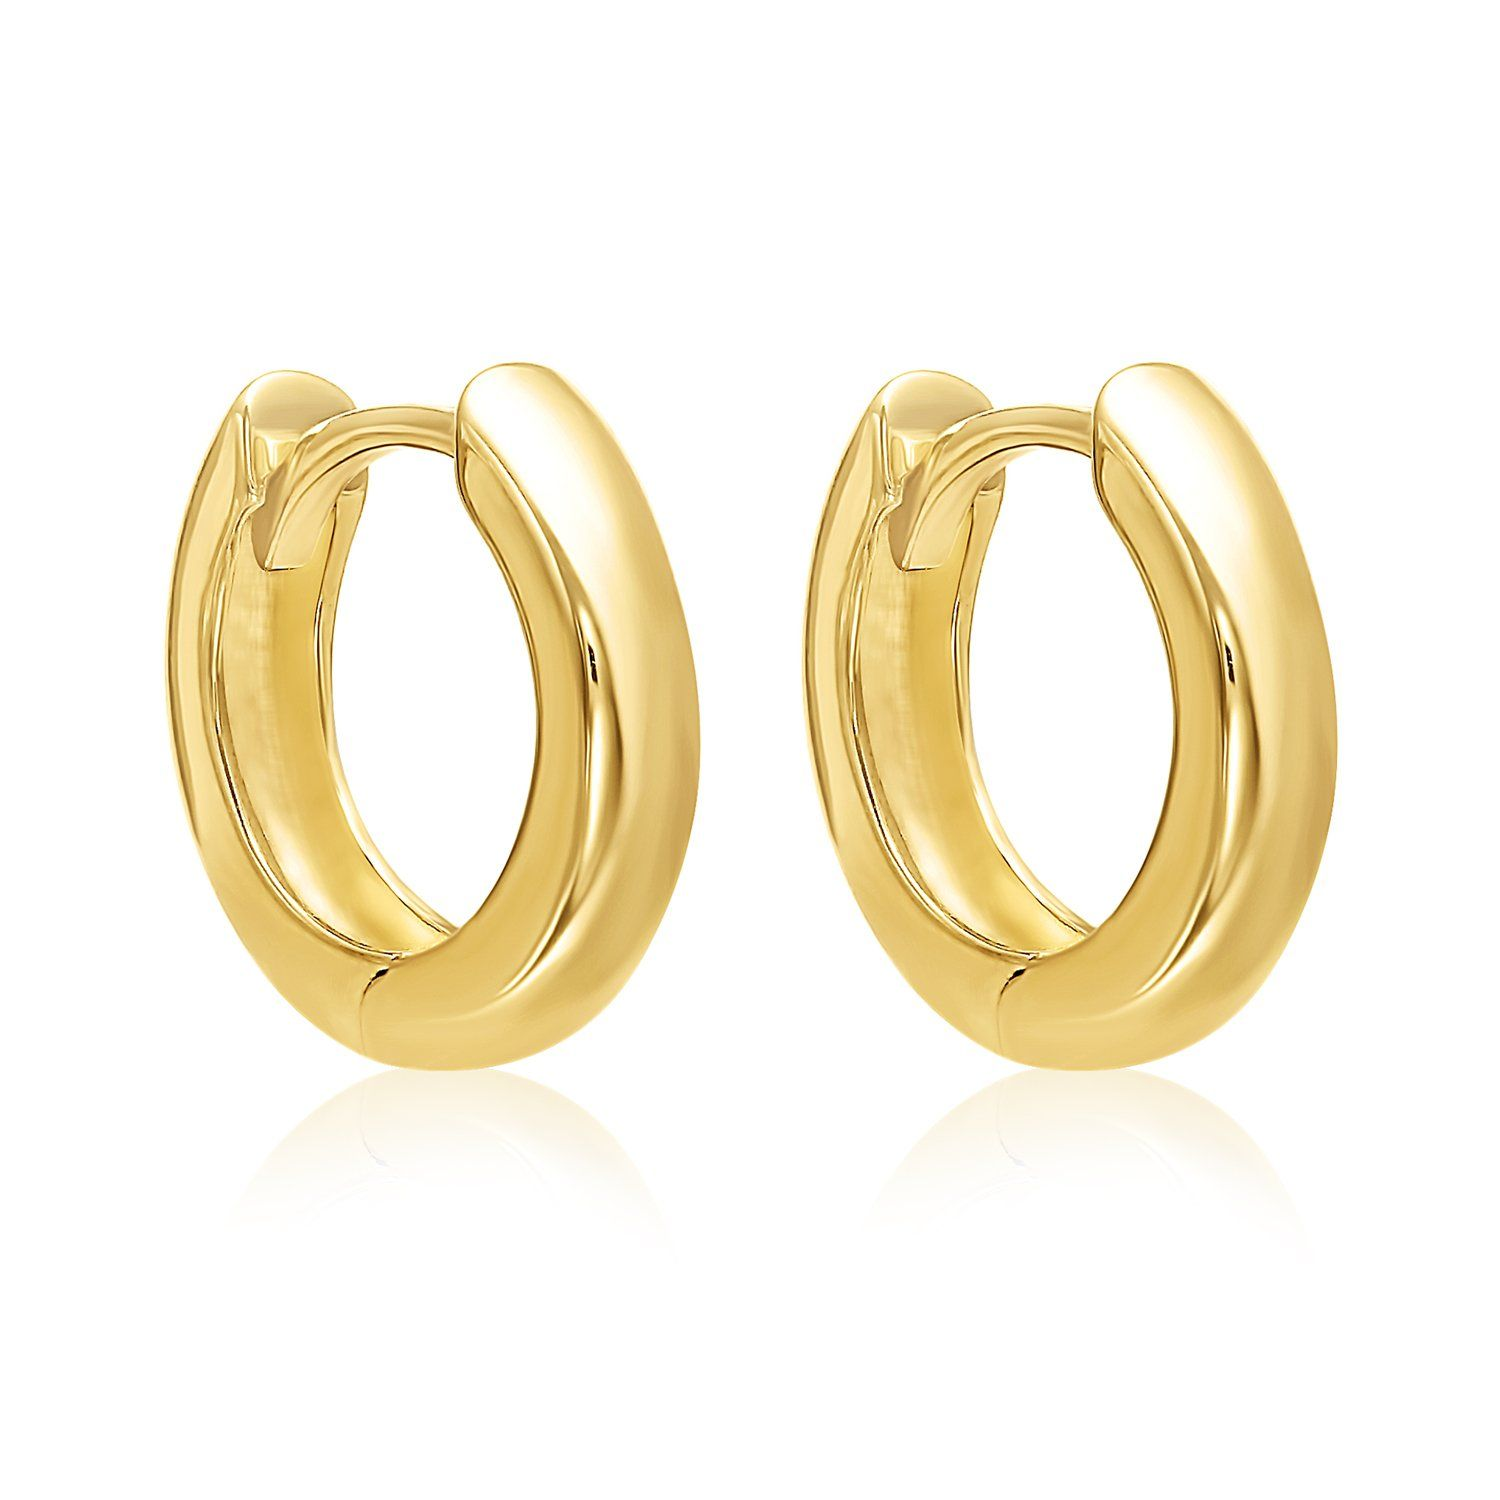 Mcs Jewelry 14 Karat Yellow Gold Small Wide Huggie Hoop Earrings (diameter:  13 Mm